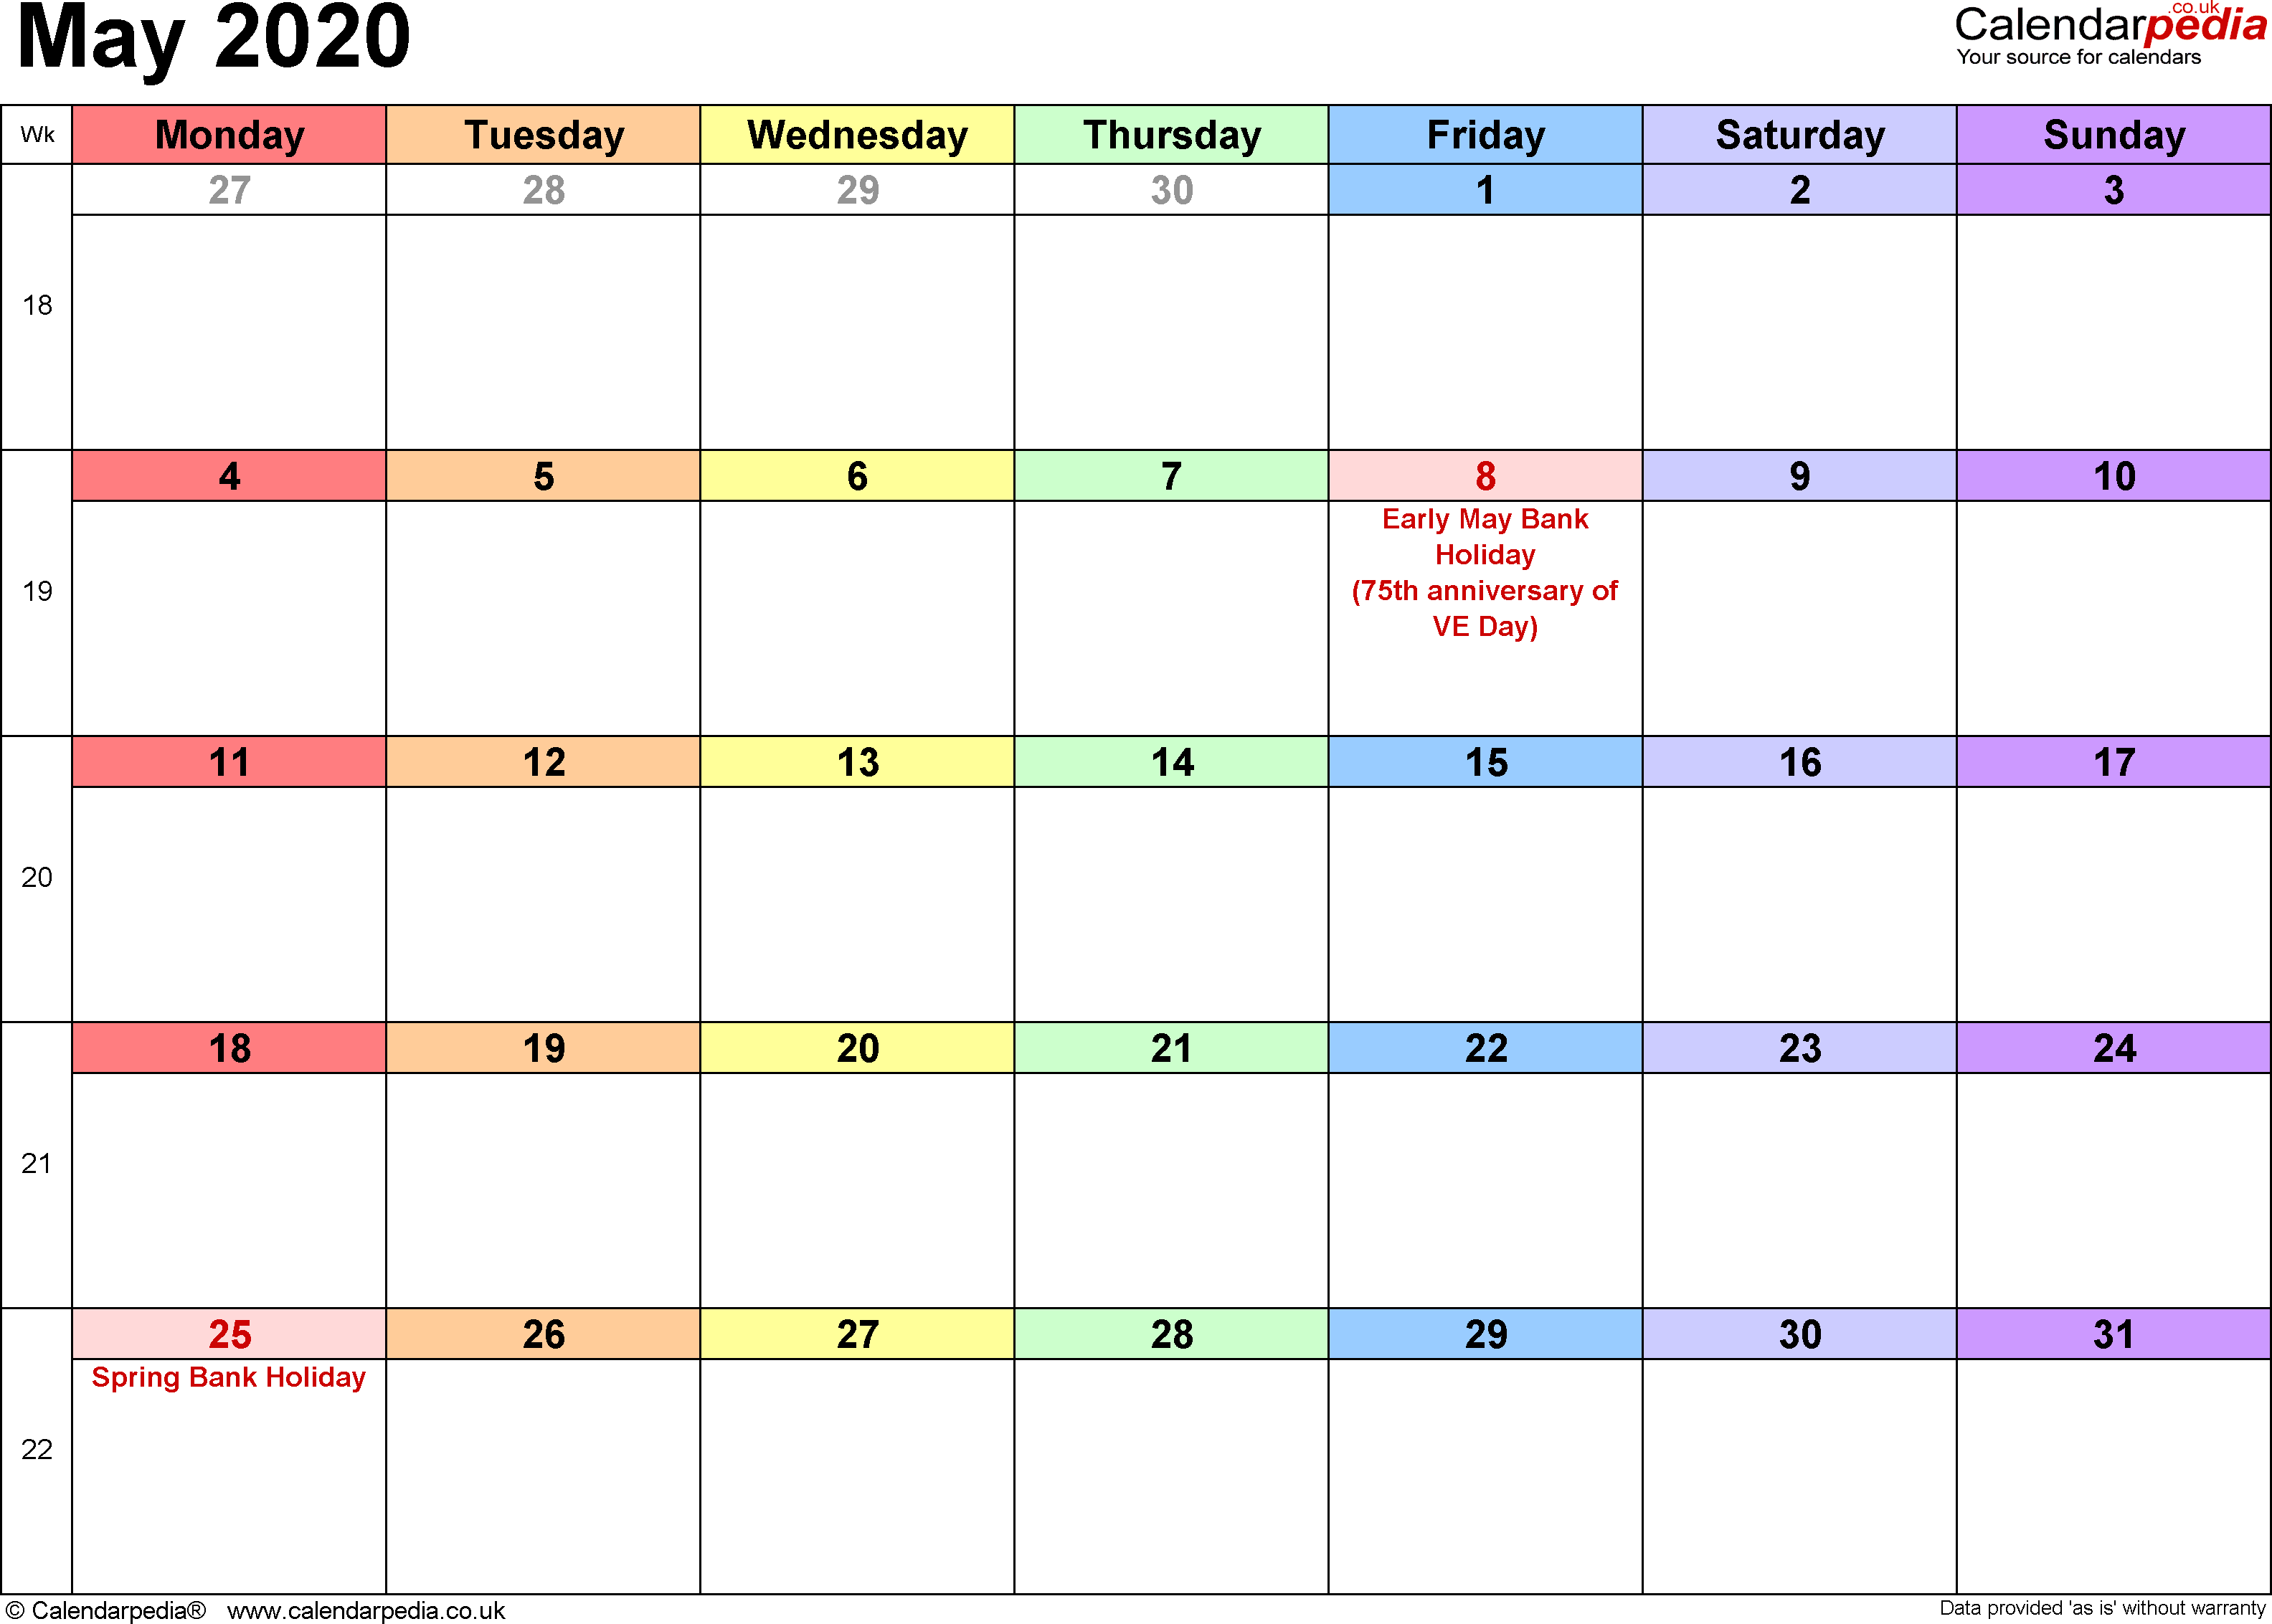 Calendar May 2020, landscape orientation, 1 page, with UK bank holidays and week numbers